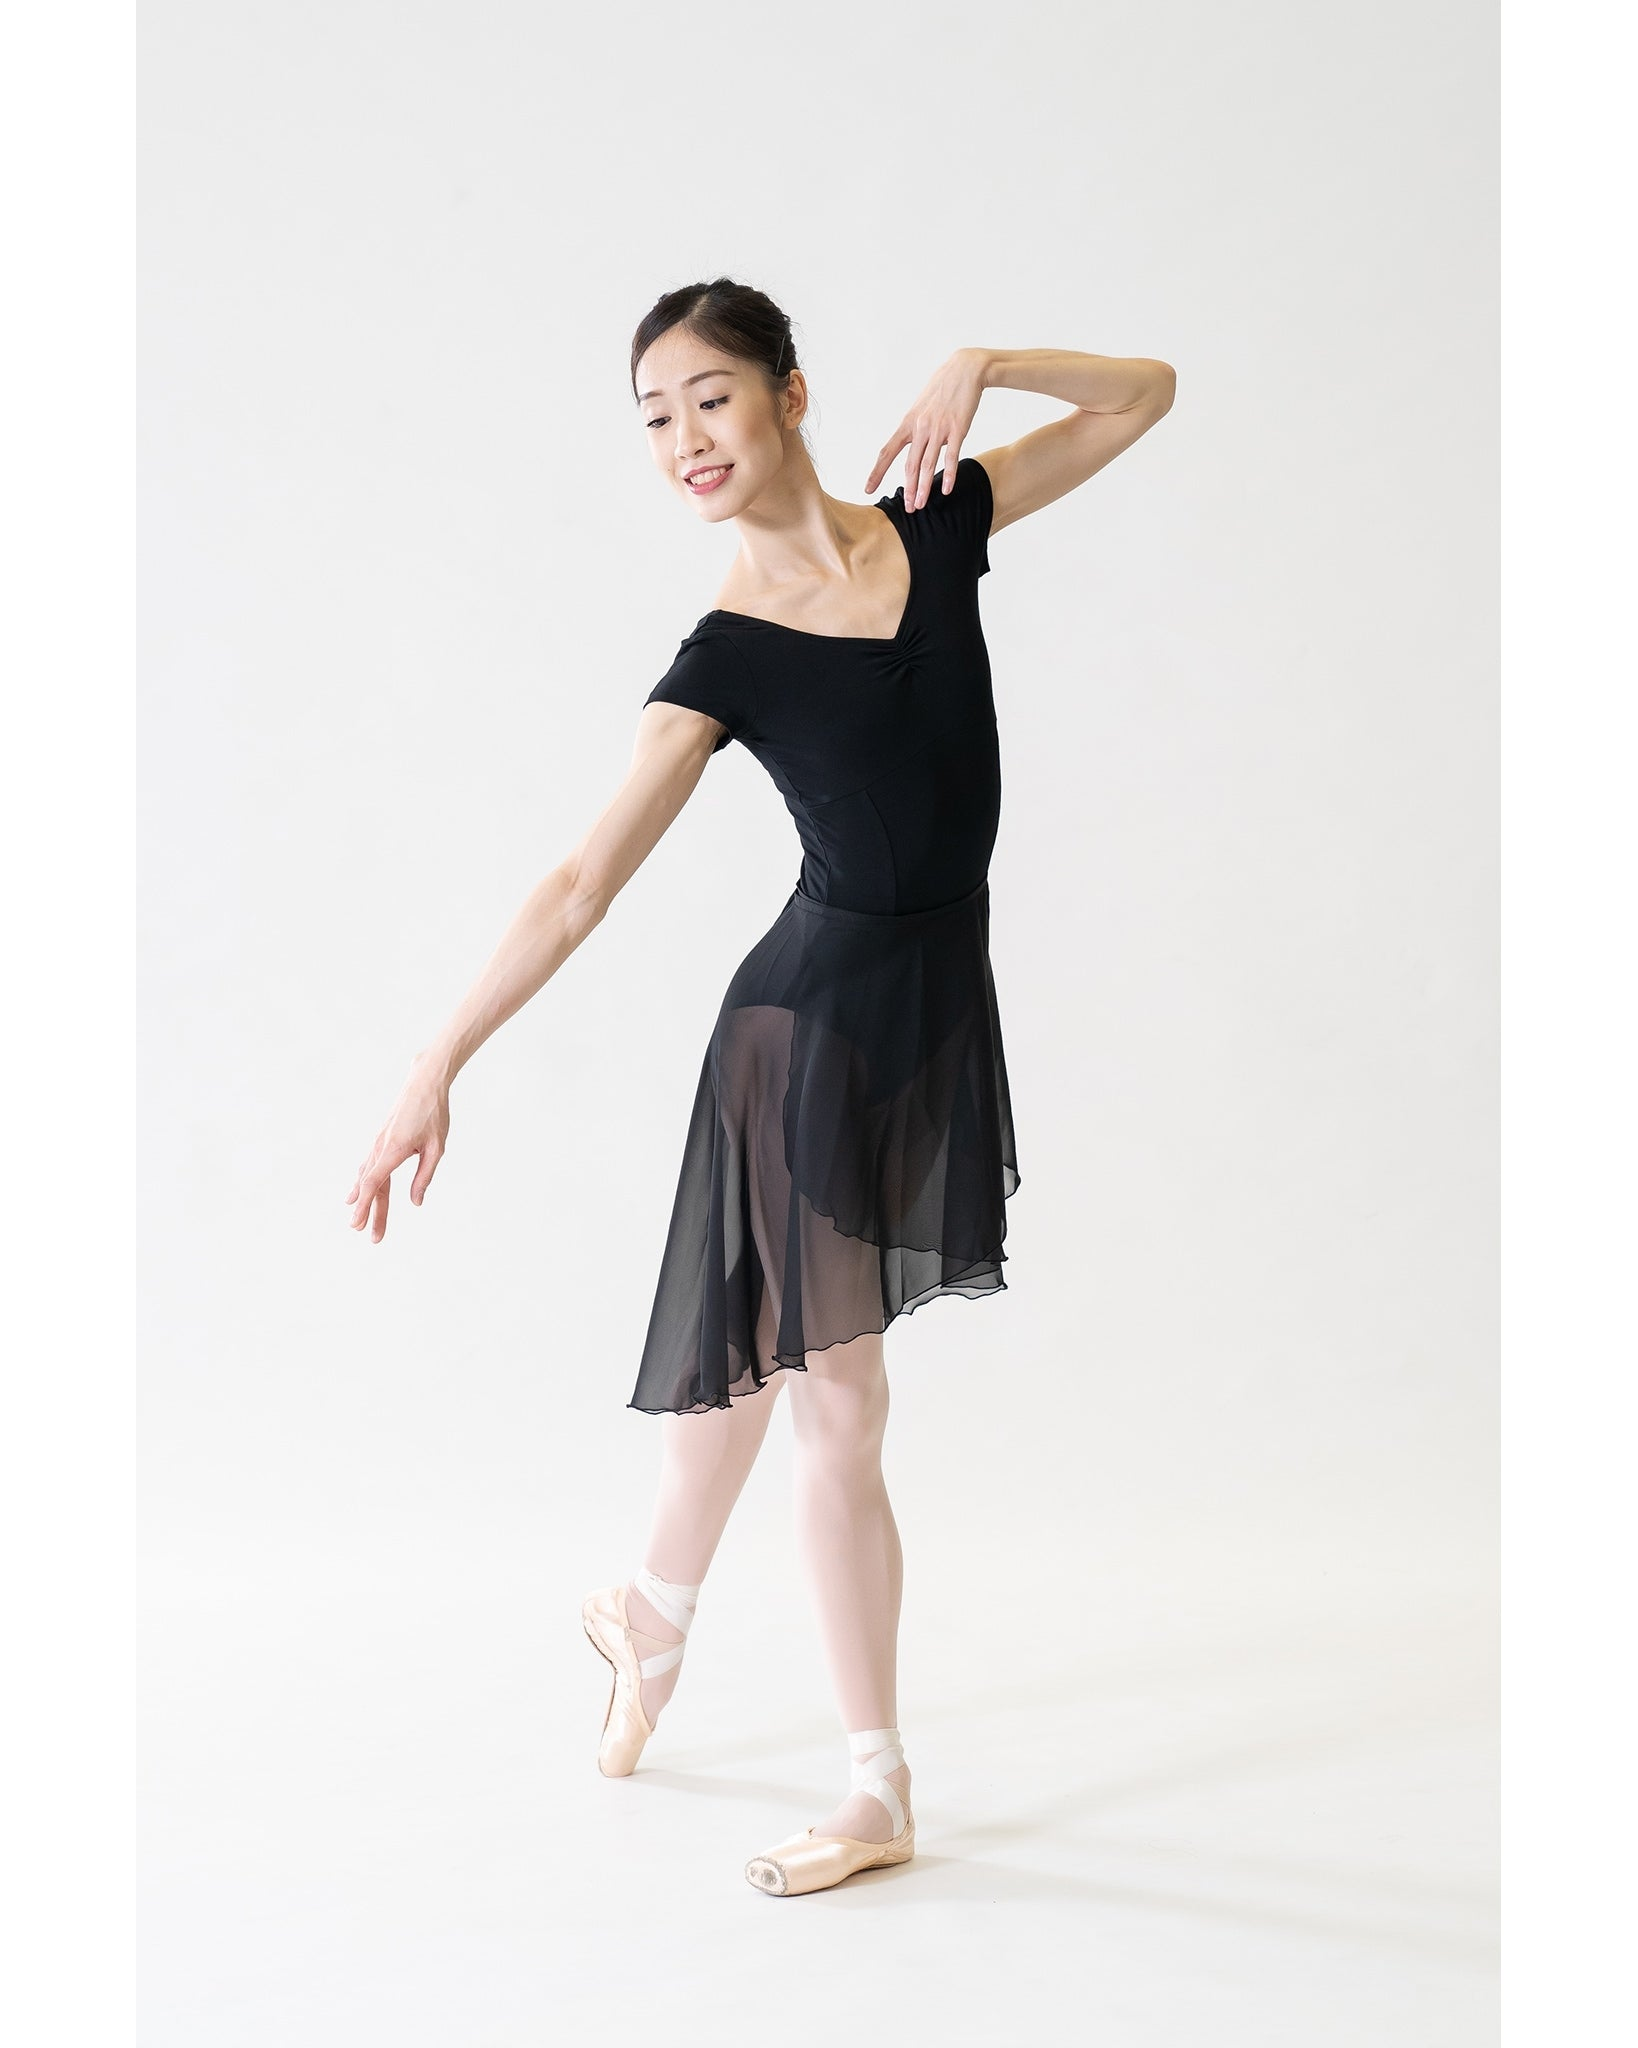 Sonata Repertoire Asymmetrical Ballet Wrap Skirt - WSK19 Womens - Dancewear - Skirts - Dancewear Centre Canada